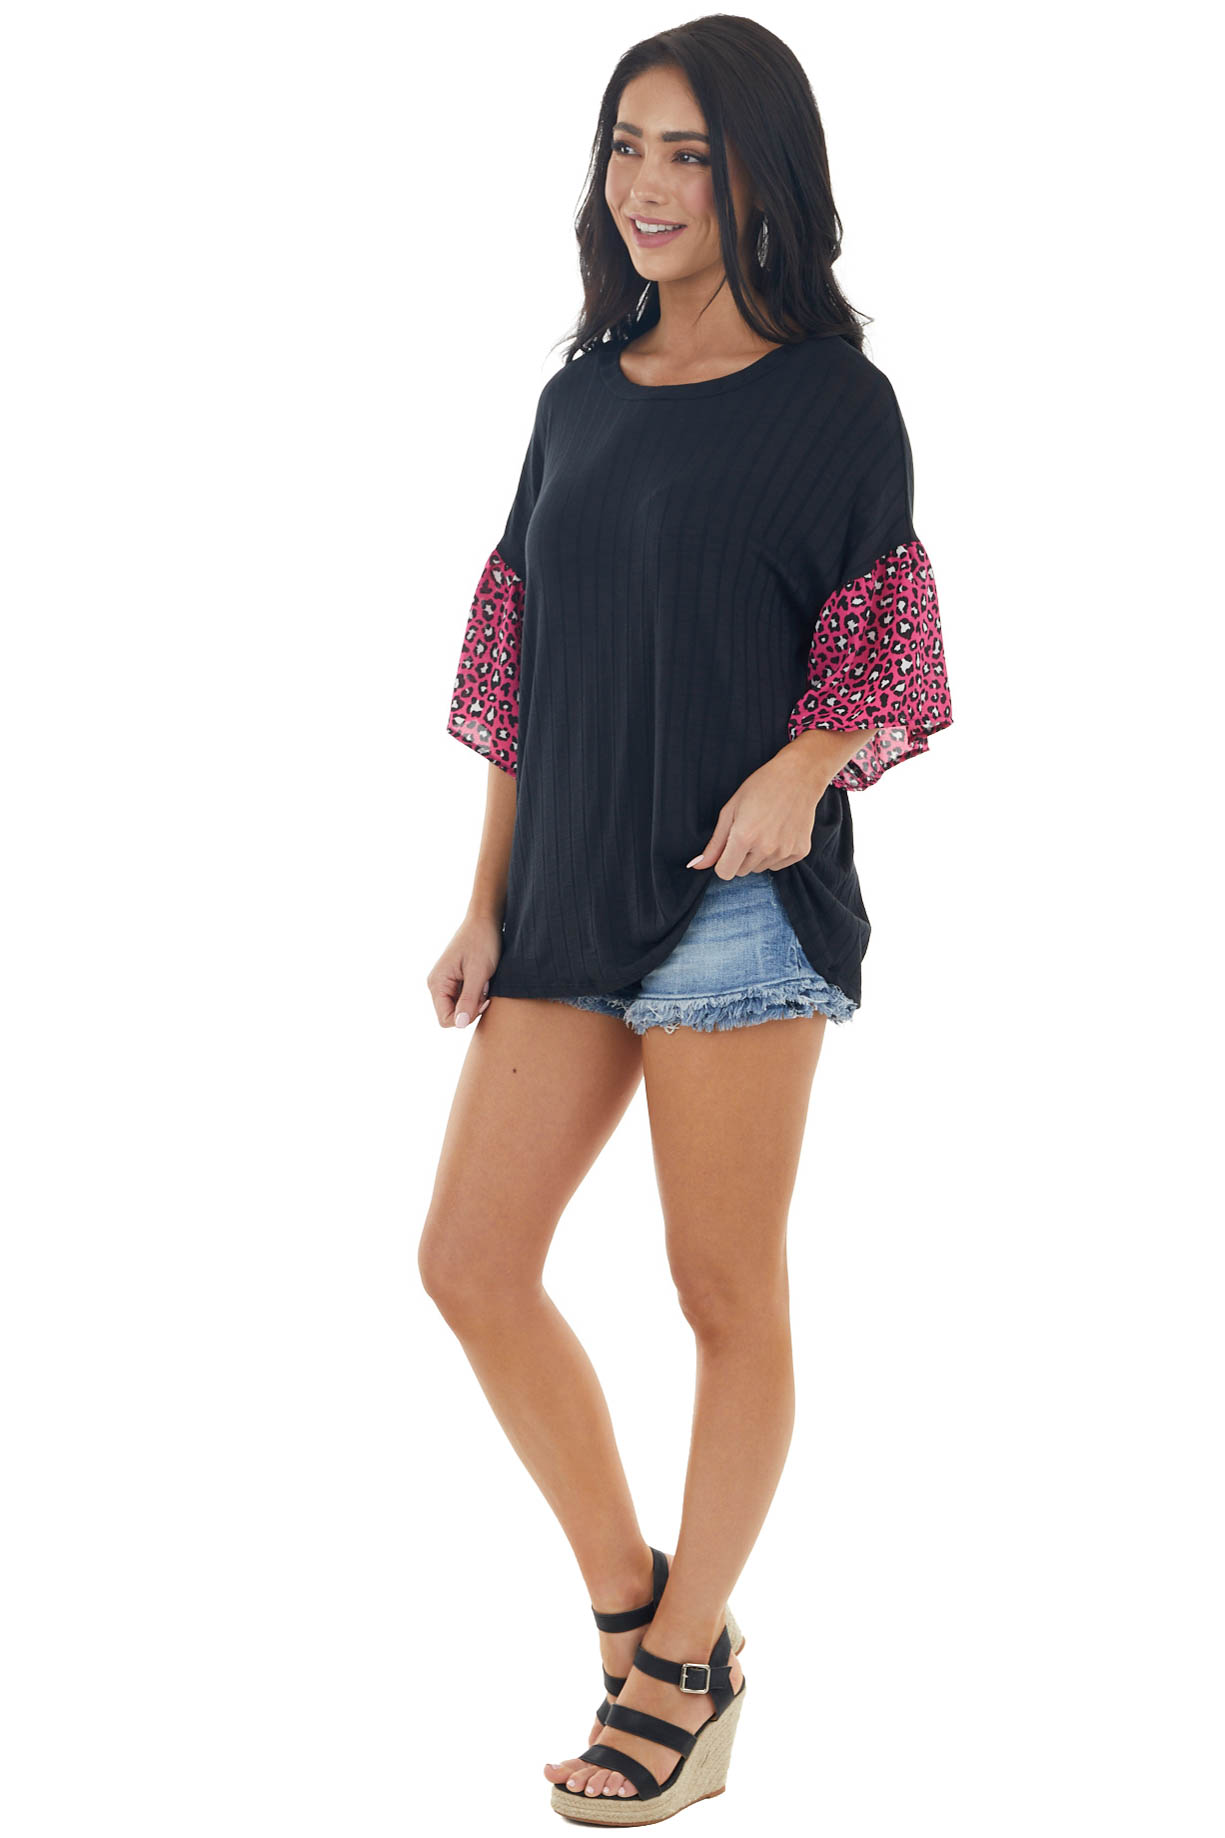 Black Ribbed Short Sleeve Knit Top with Leopard Detail